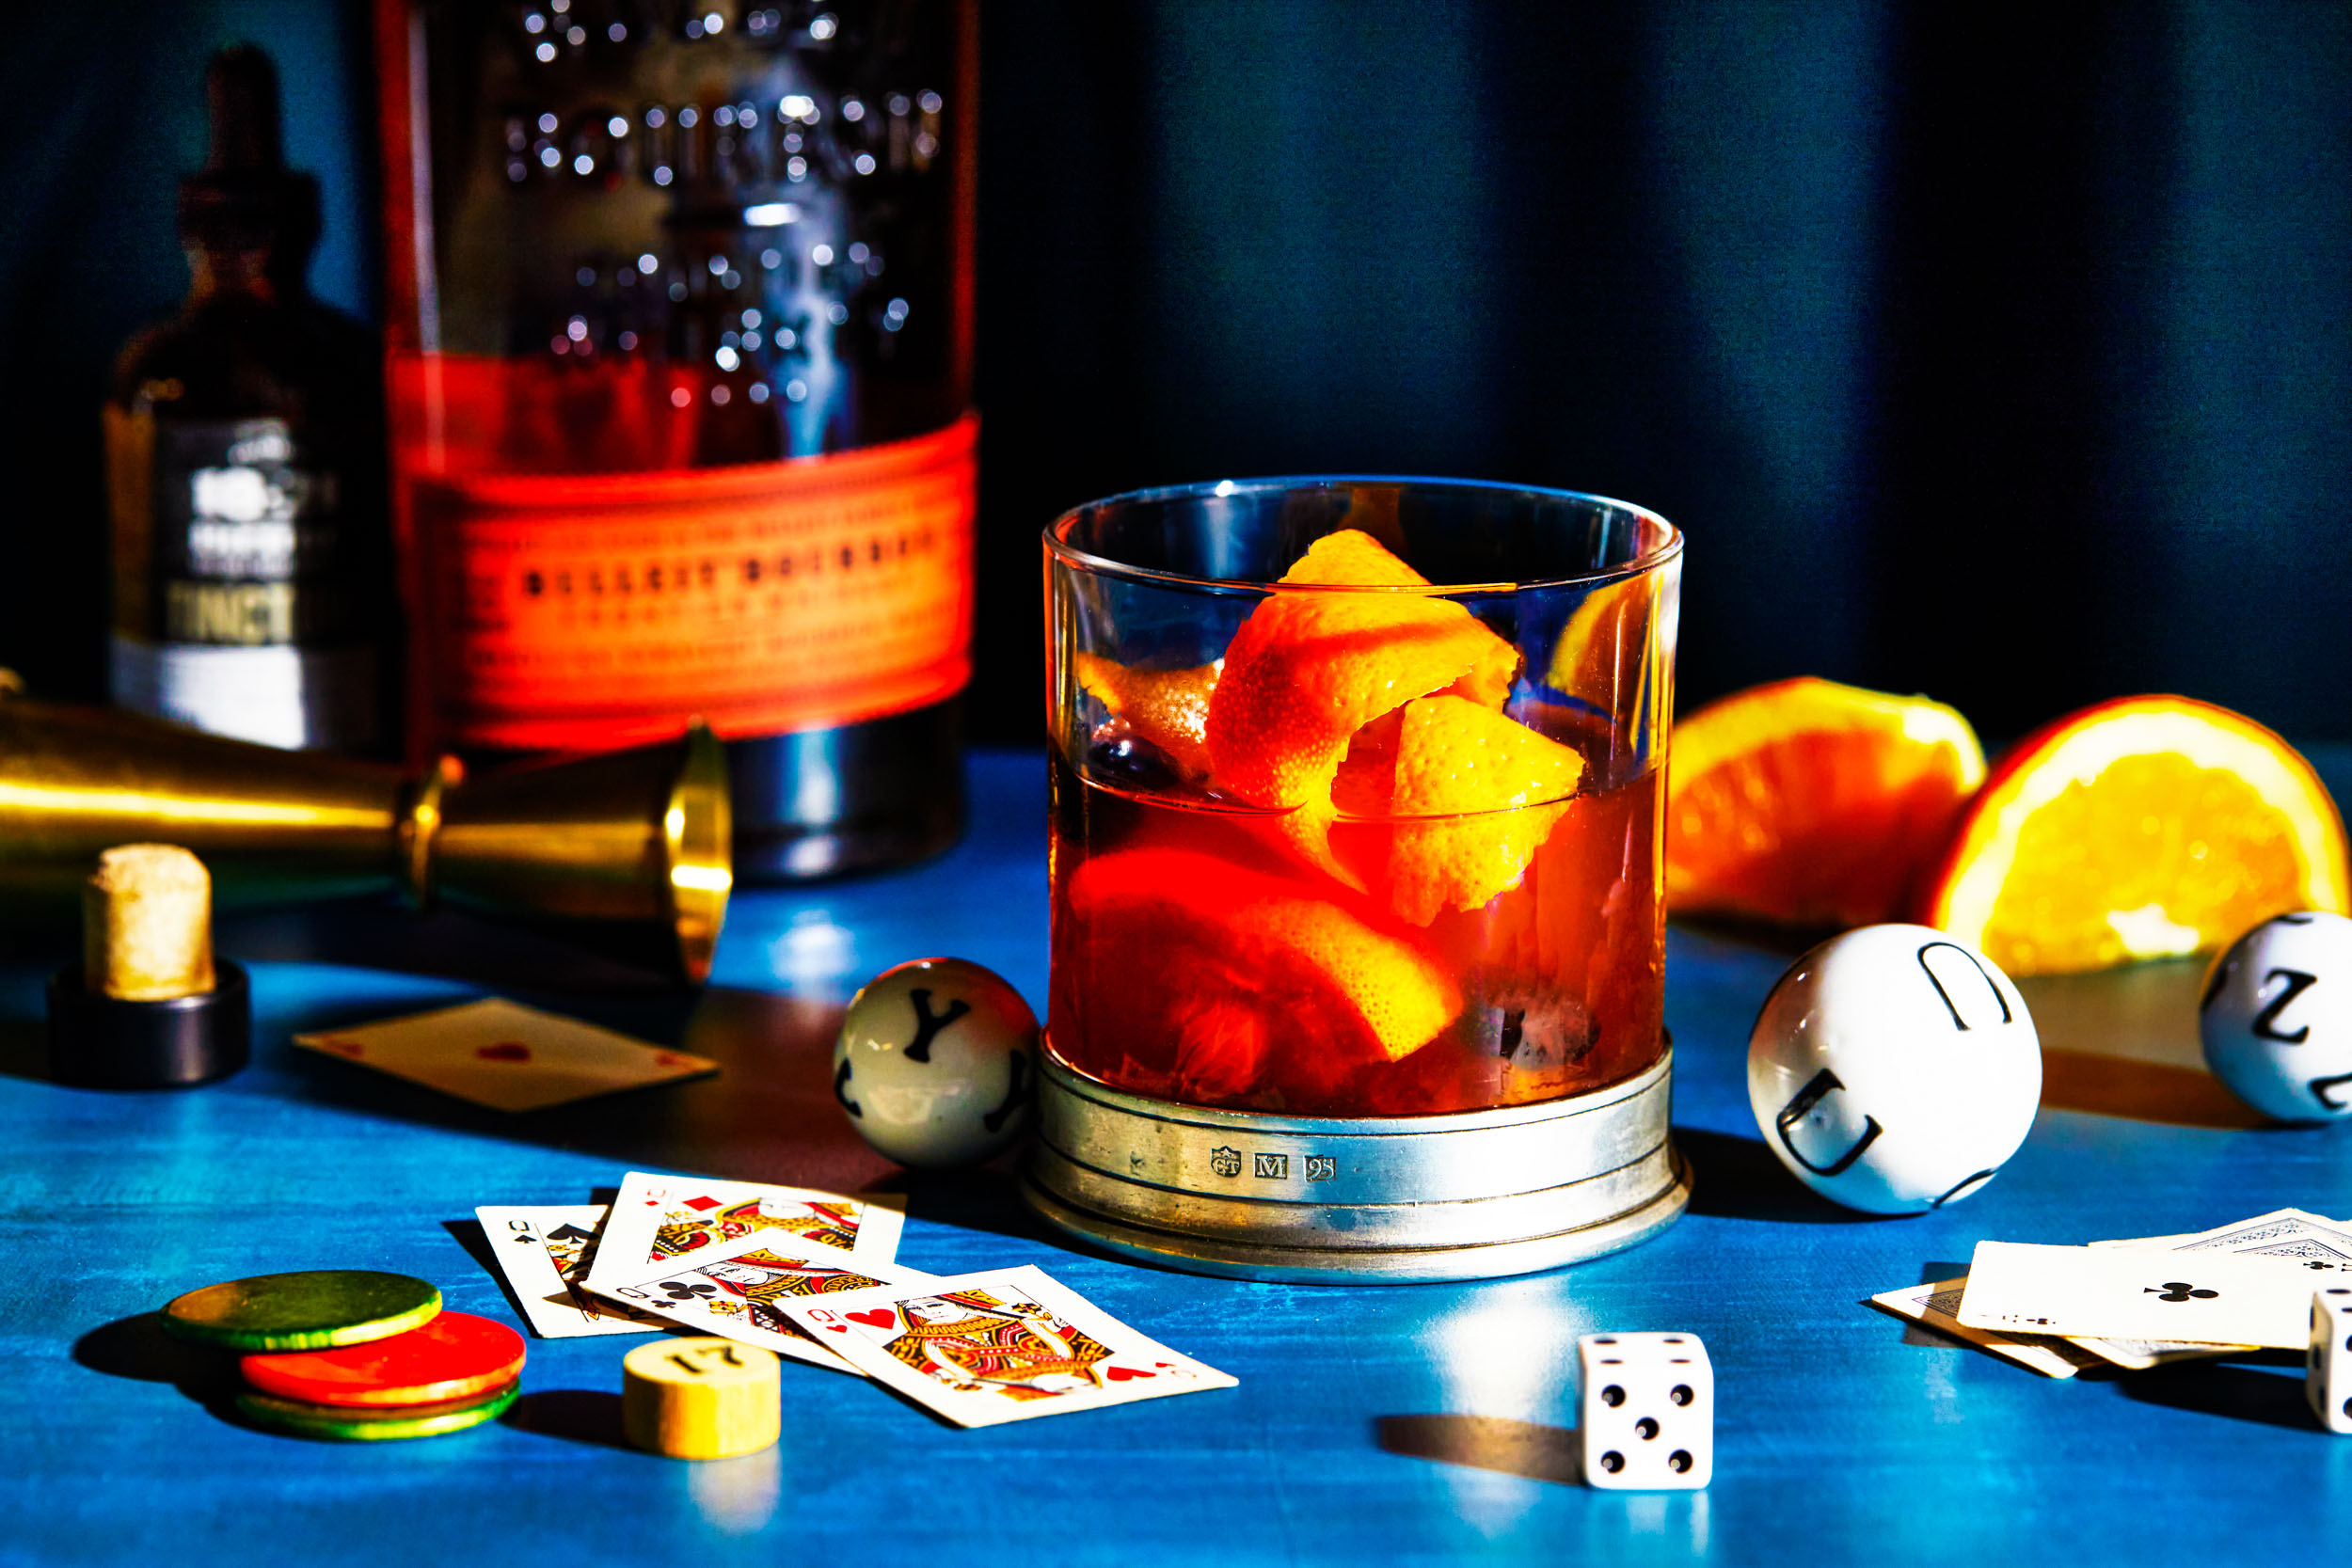 dominic-perri-food-beverage-drink-bulleit-bourbon